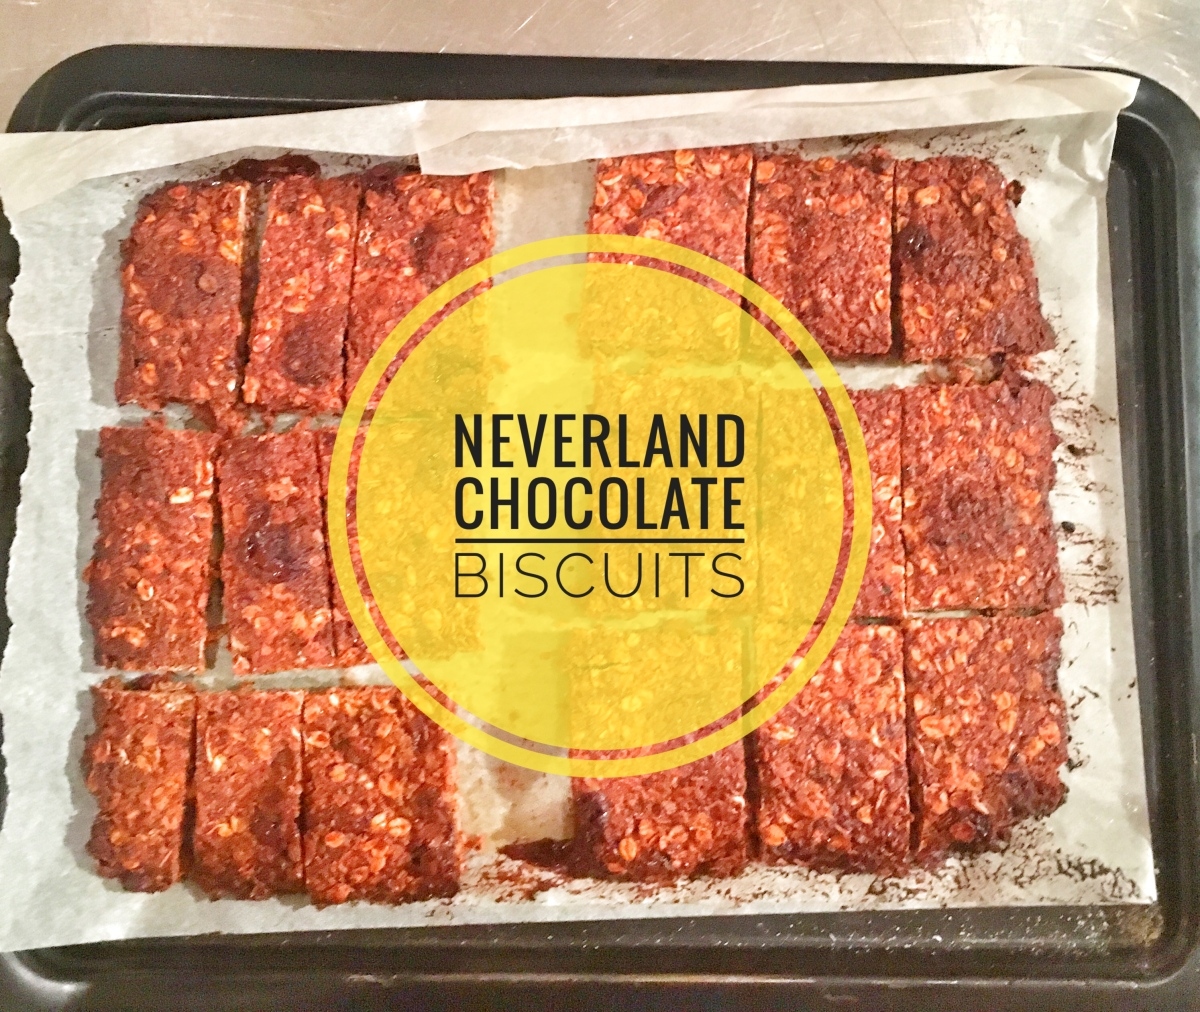 Neverland Chocolate Biscuits